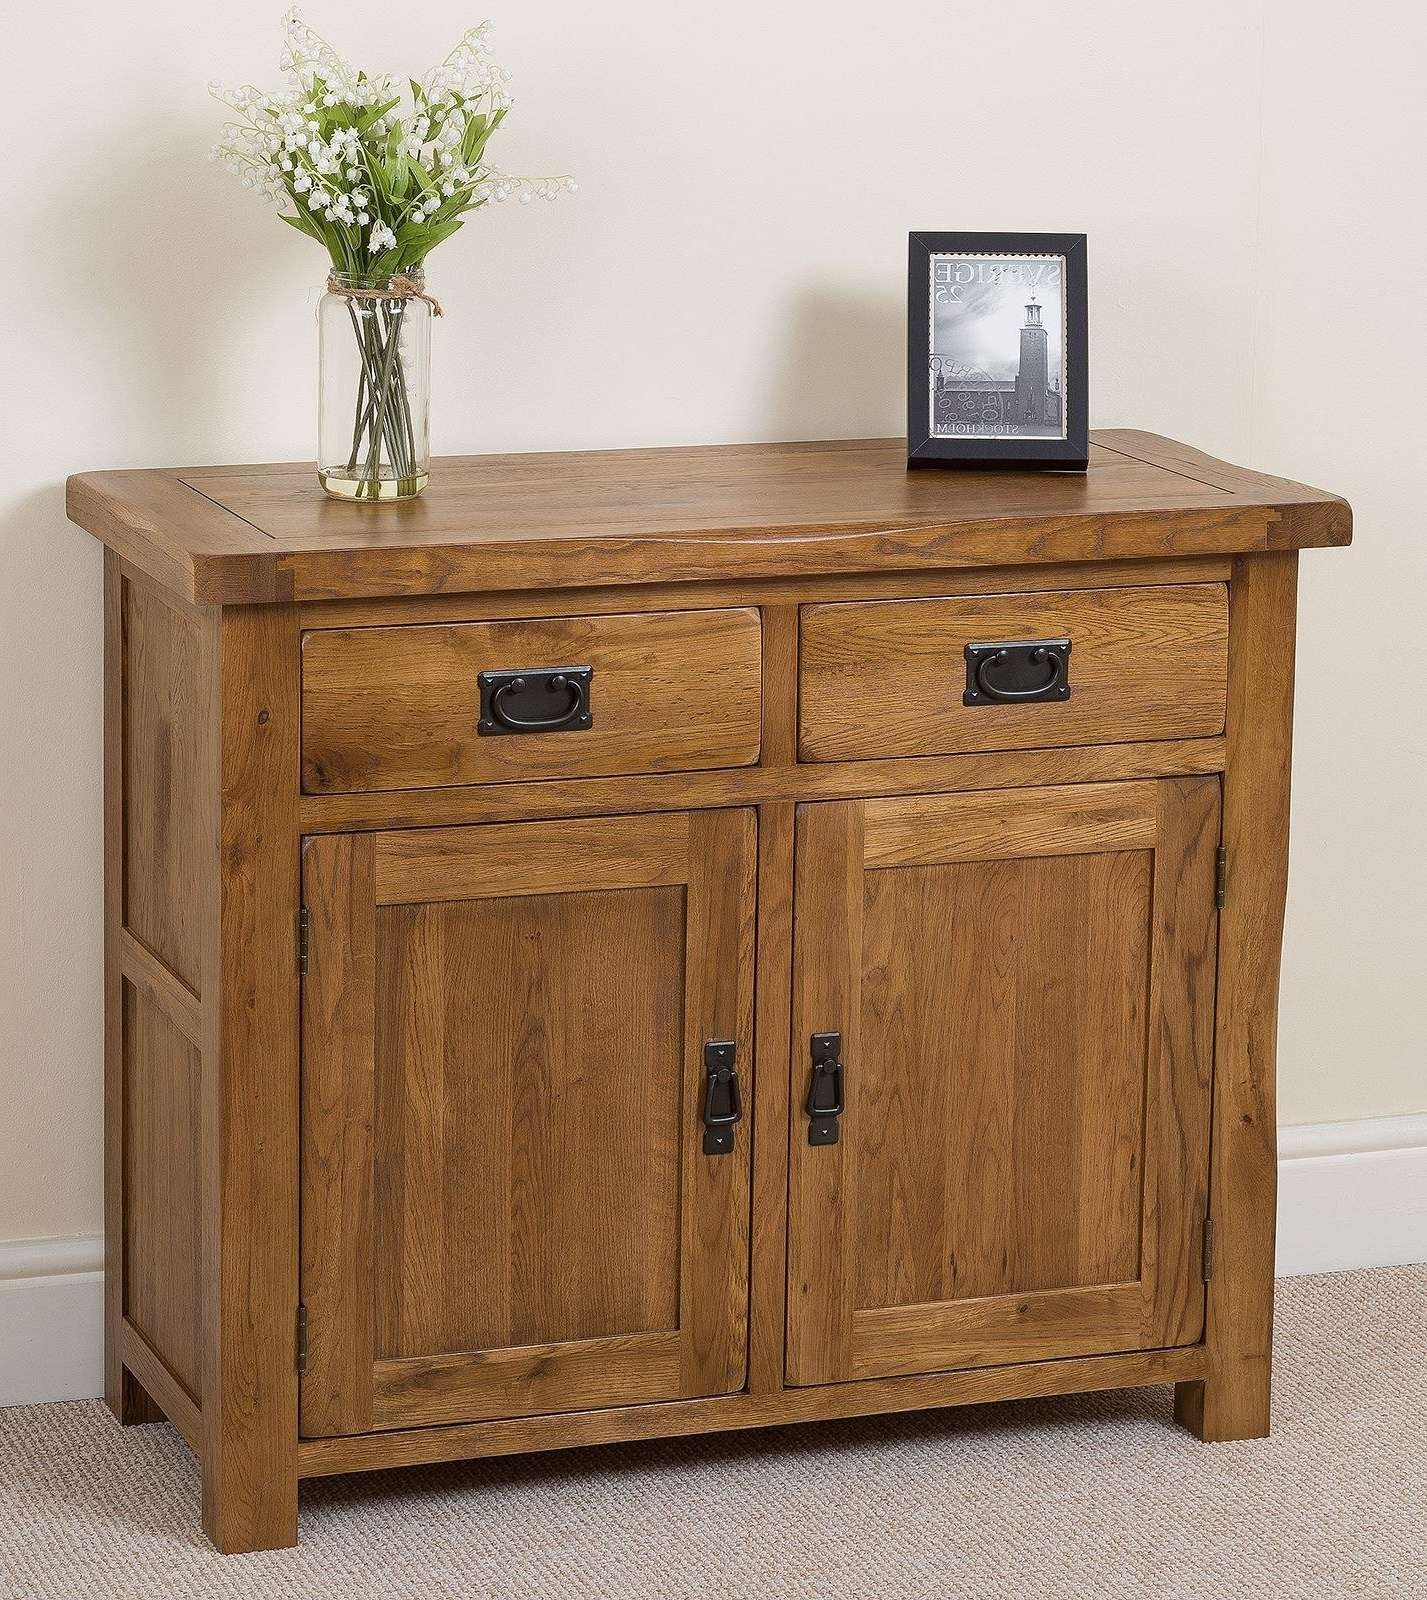 Find The Harmony Rustic Sideboard — Rocket Uncle Rocket Uncle For Solid Wood Sideboards (View 5 of 20)